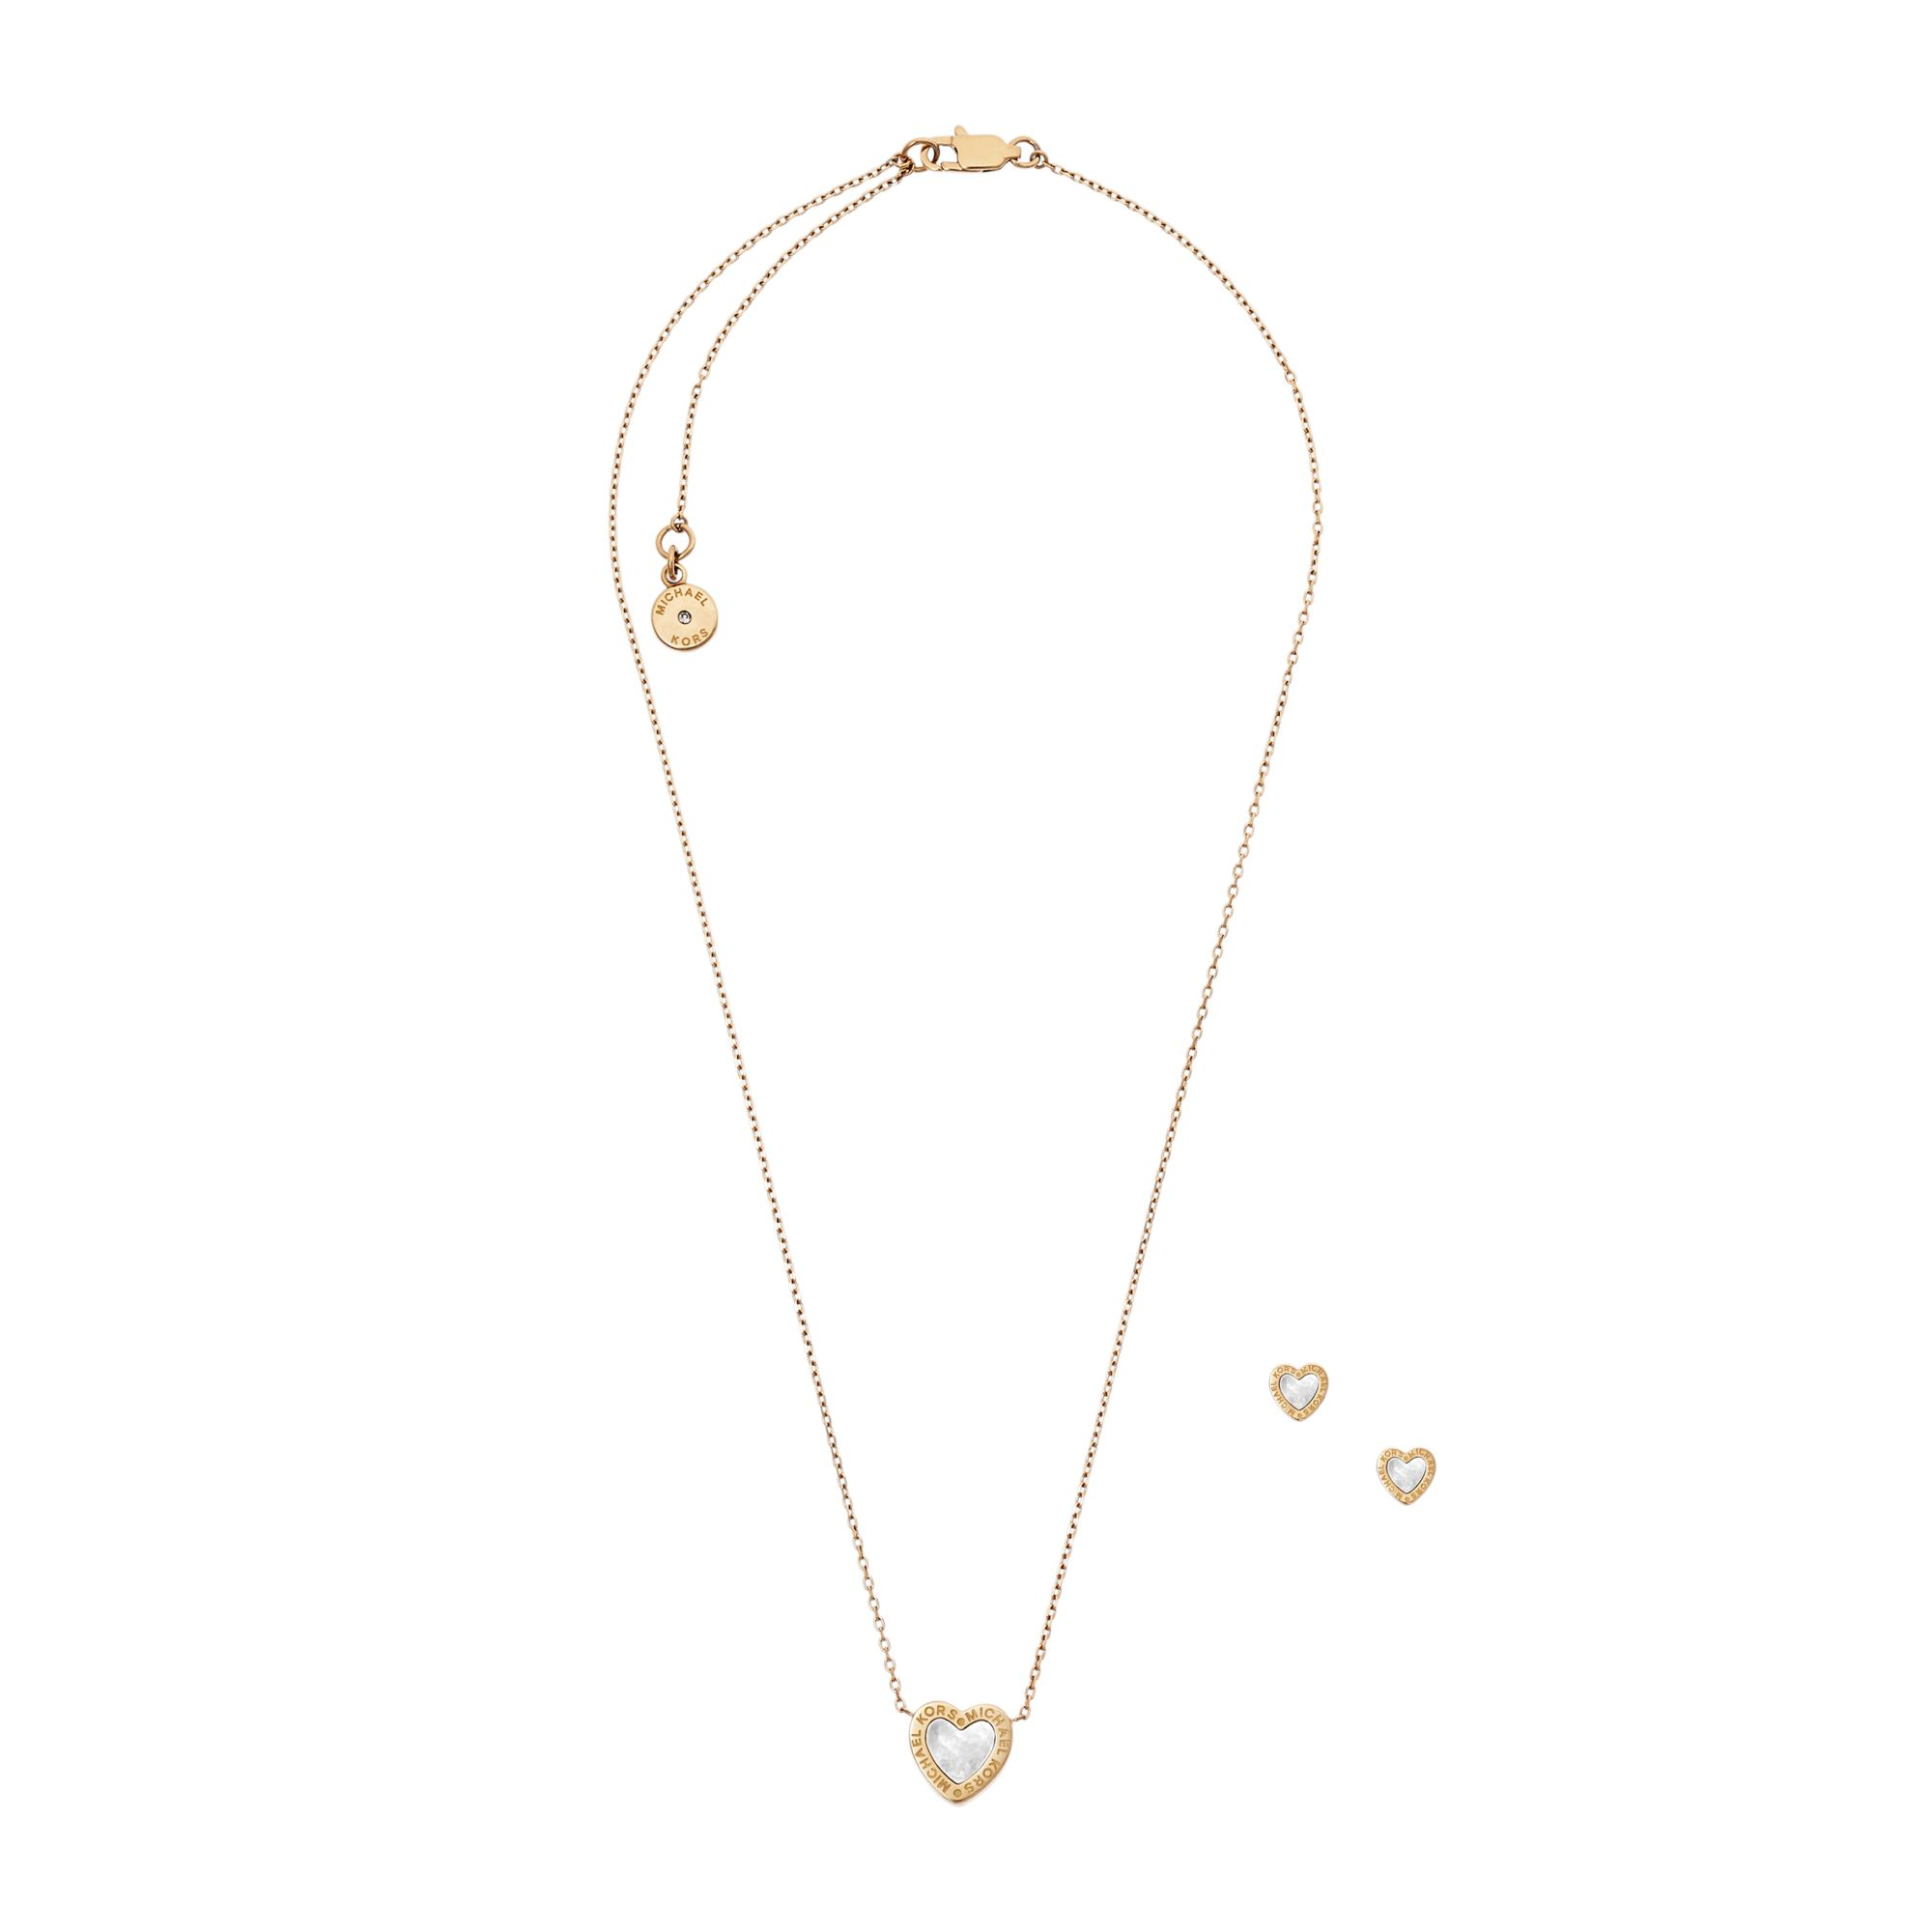 Michael kors Gold-tone Heart Necklace And Earrings Set in ...